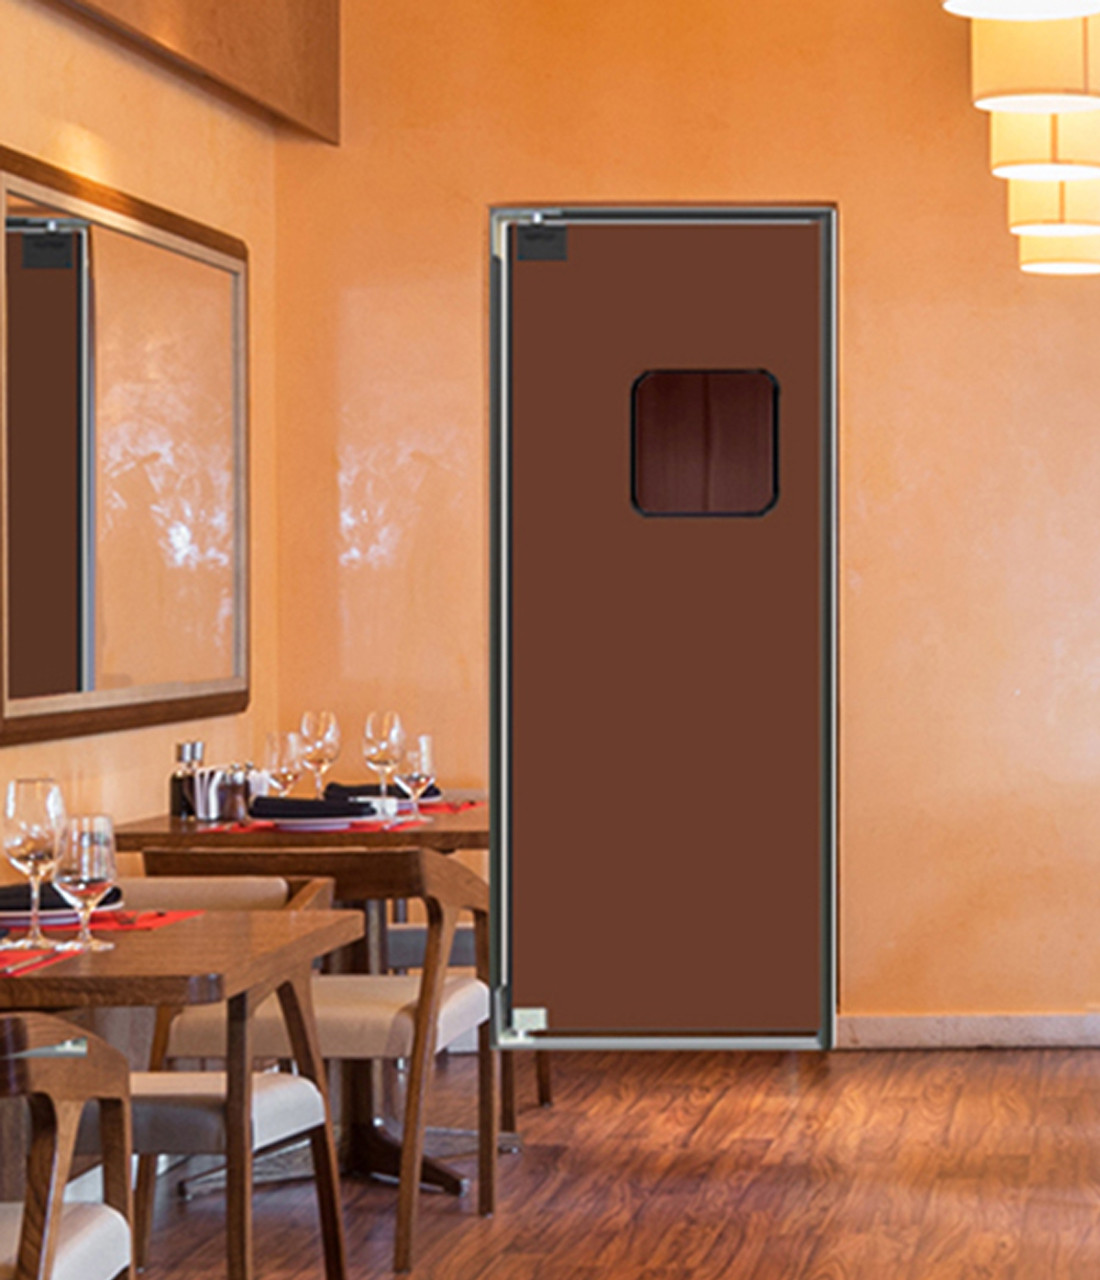 Wood Free Swinging Doors & Wood Free Swing Doors Engineered with No Wood or Organic Material